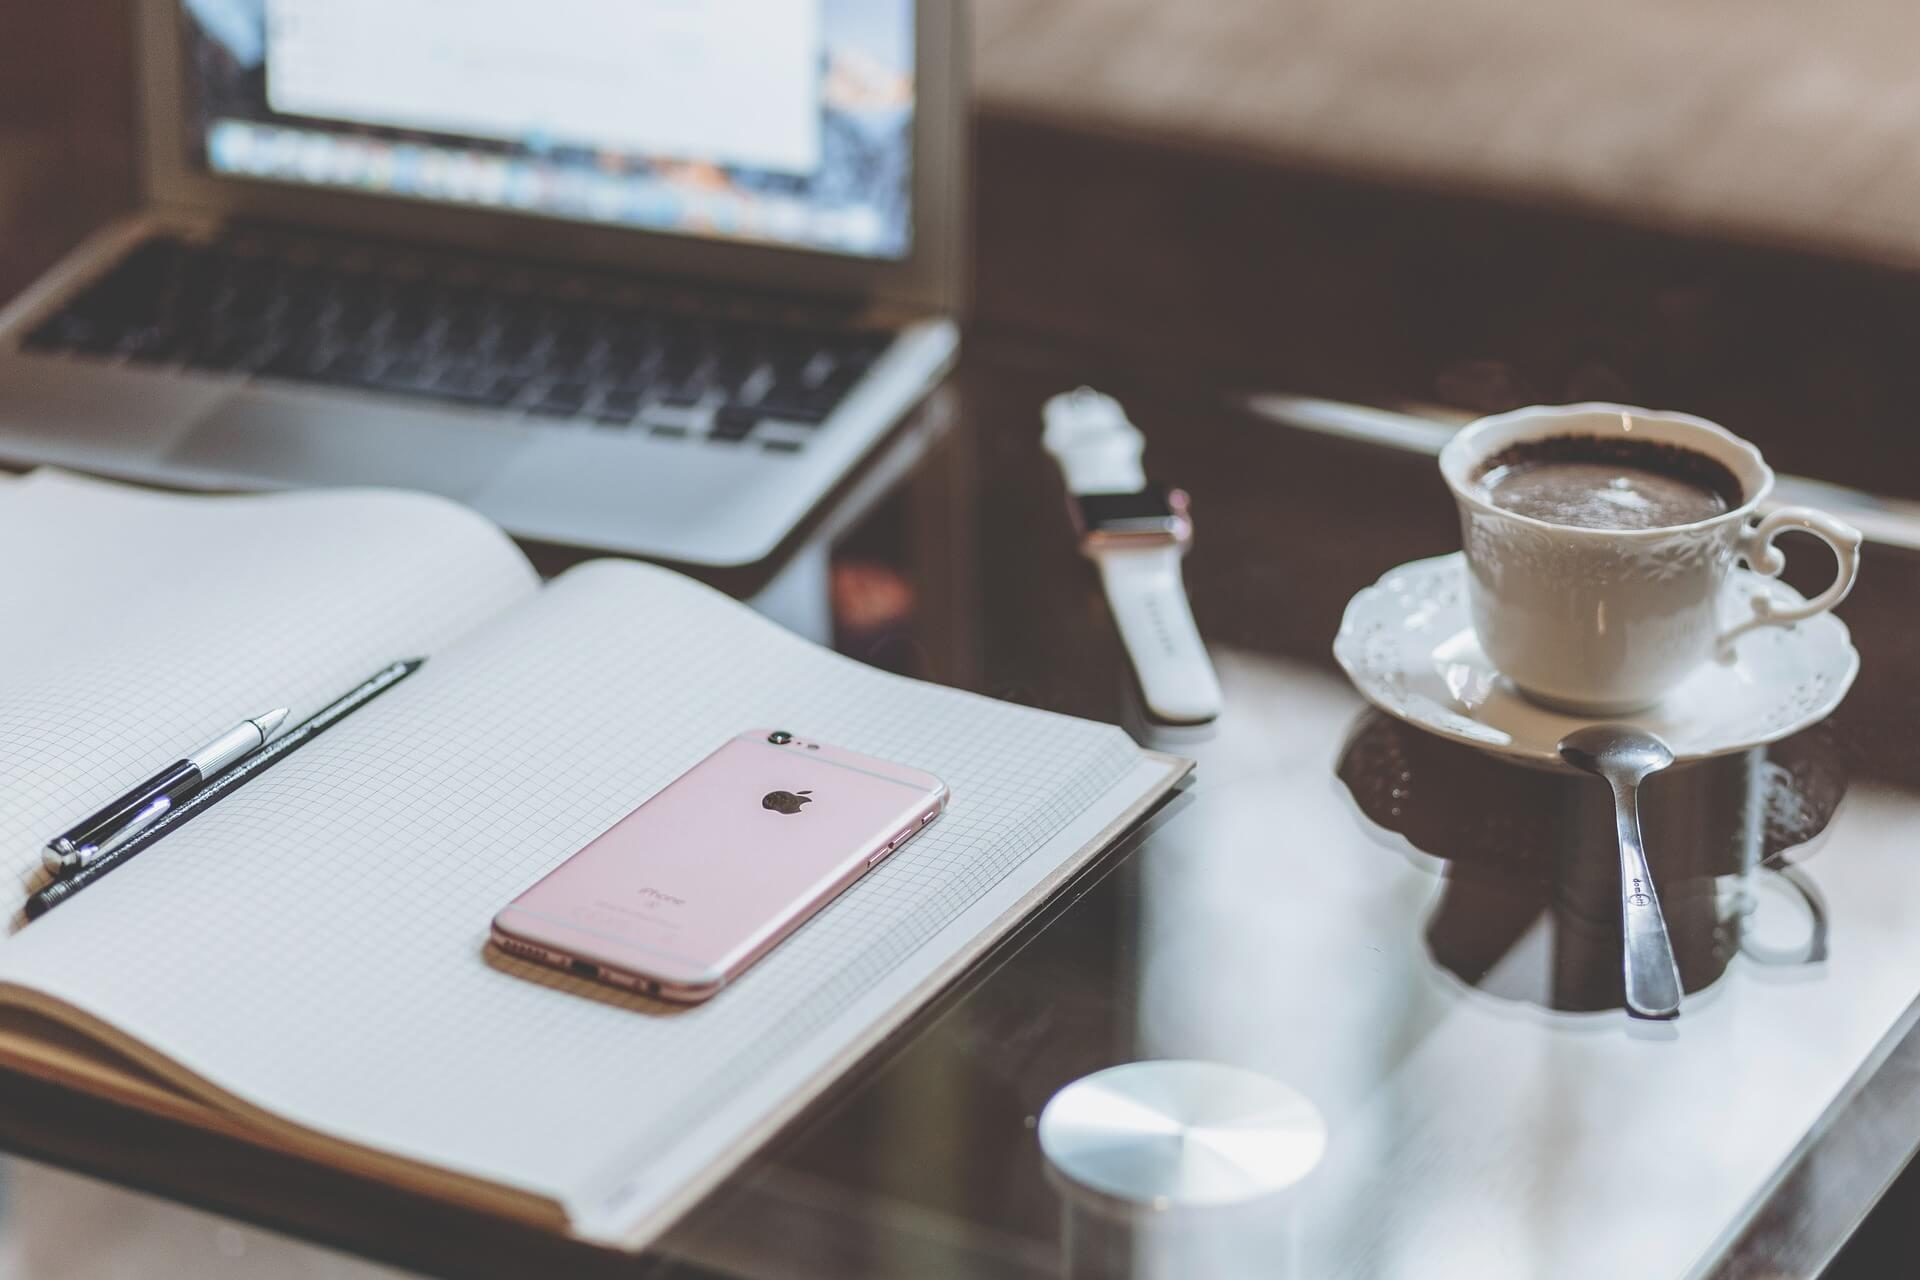 iPad Kindle Fire